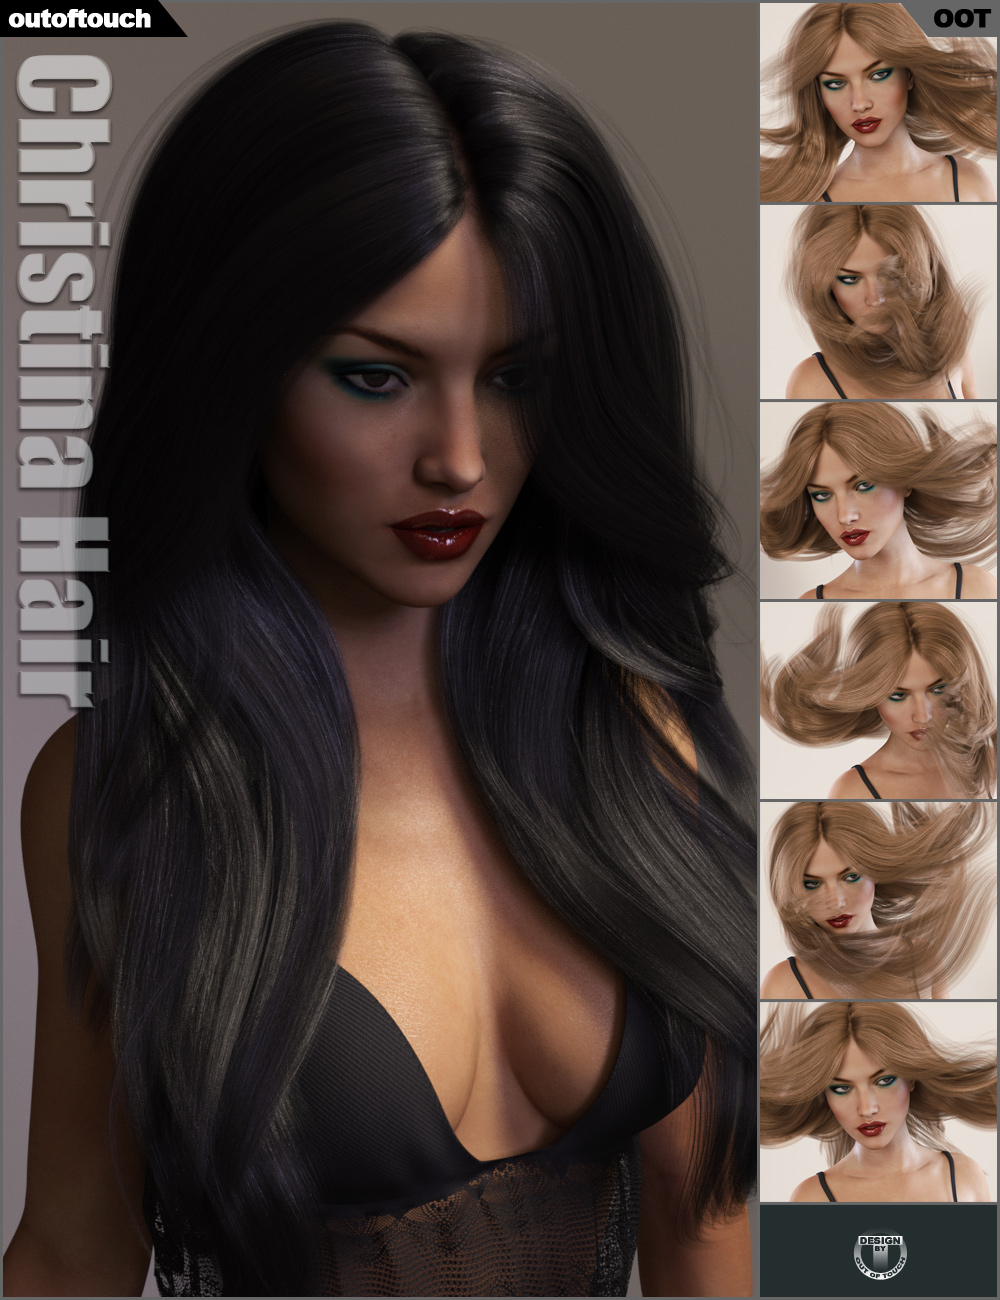 Christina Hair by: outoftouch, 3D Models by Daz 3D